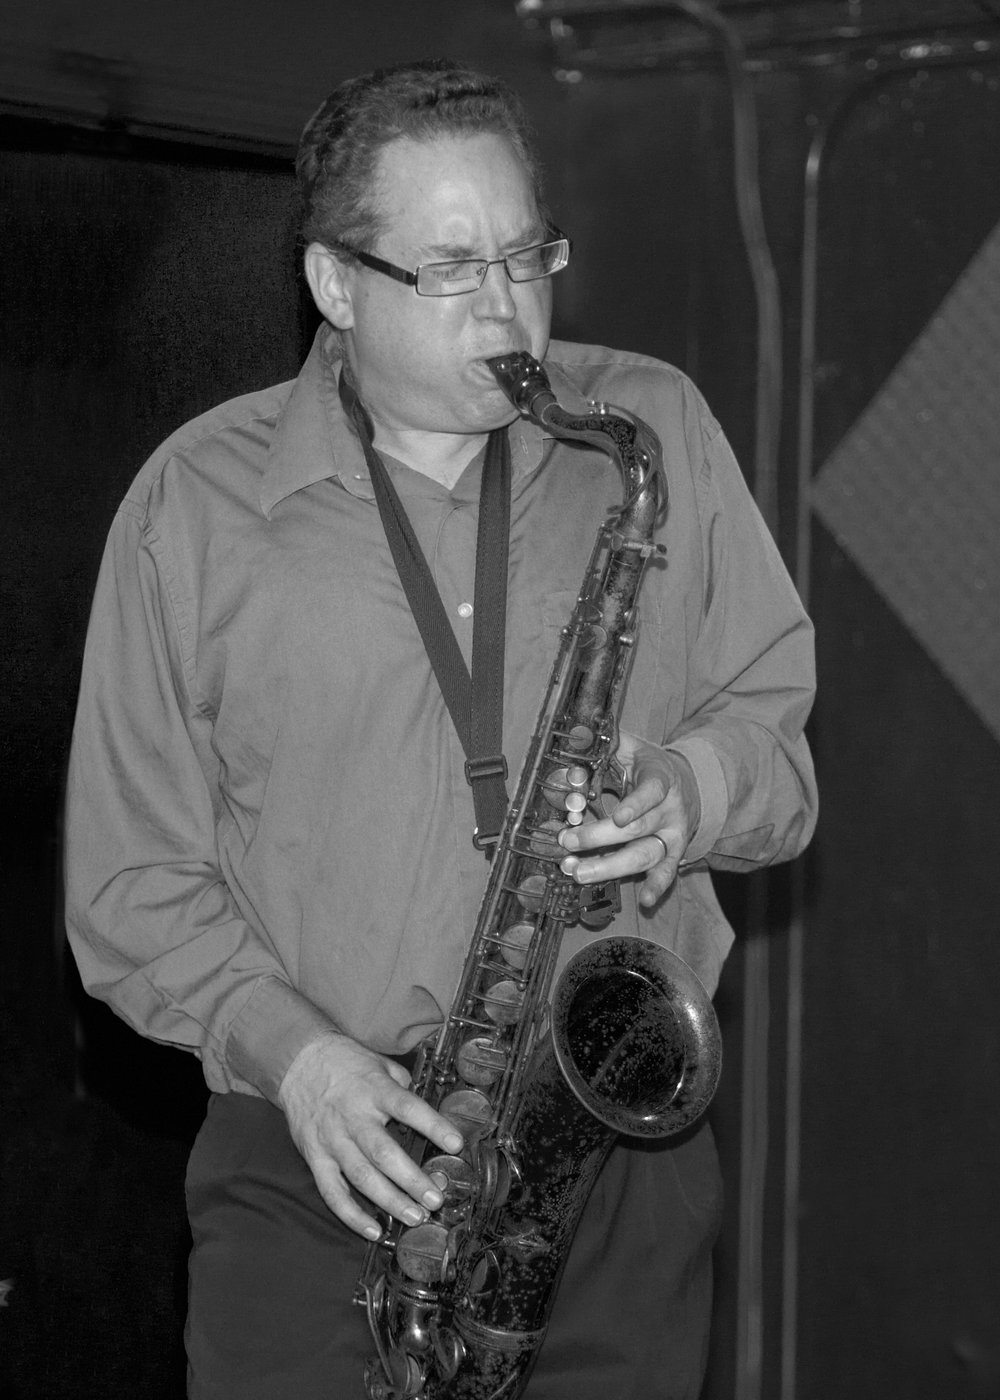 Saxophonist/composer Mike Titlebaum B&W